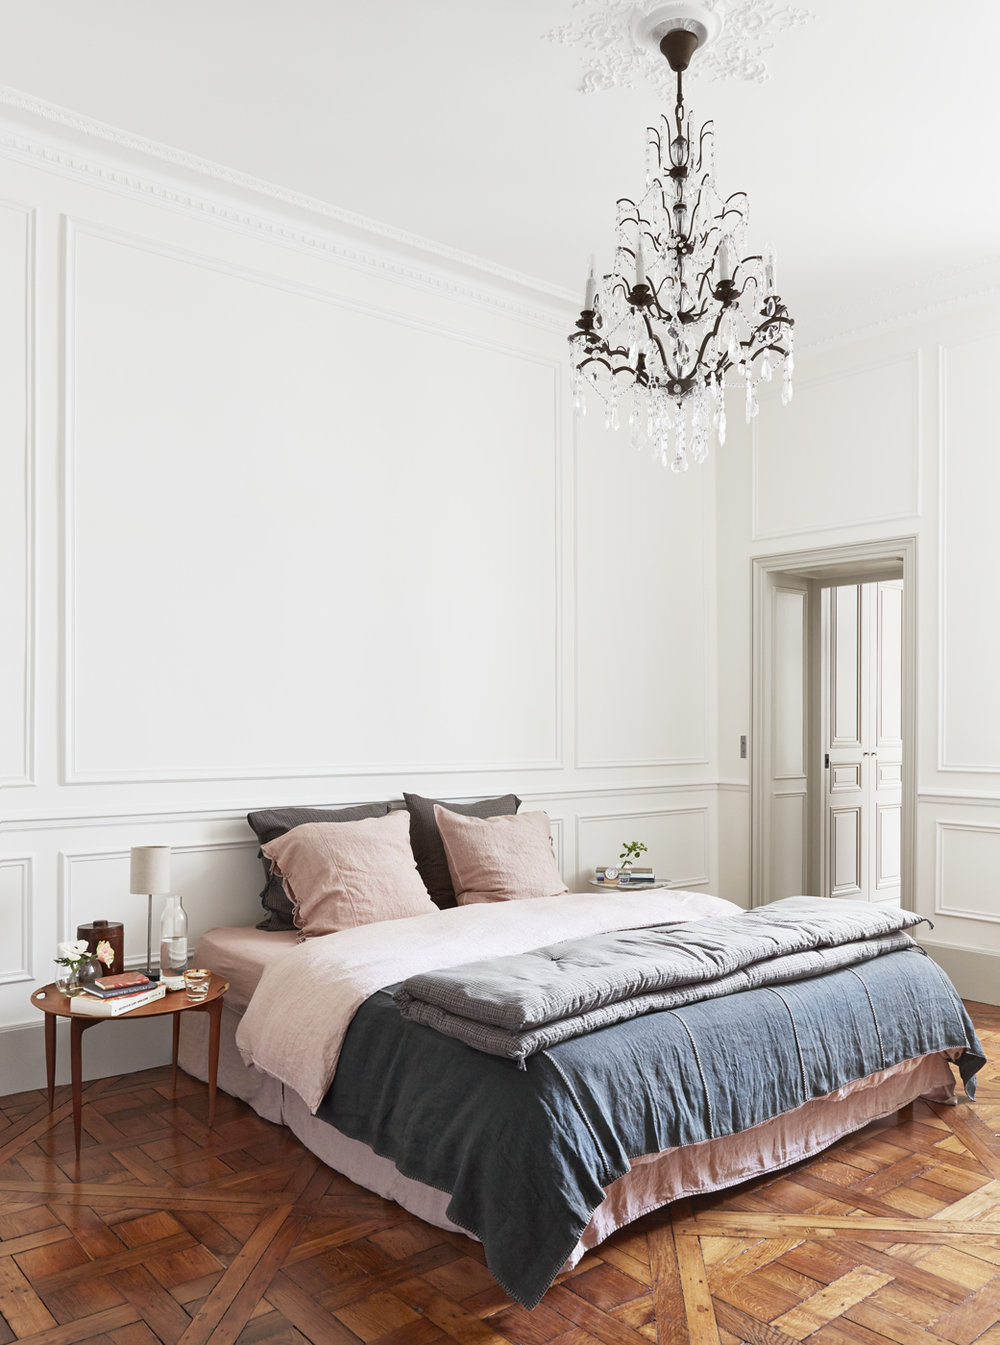 Parisian bedroom with muted pink sheets